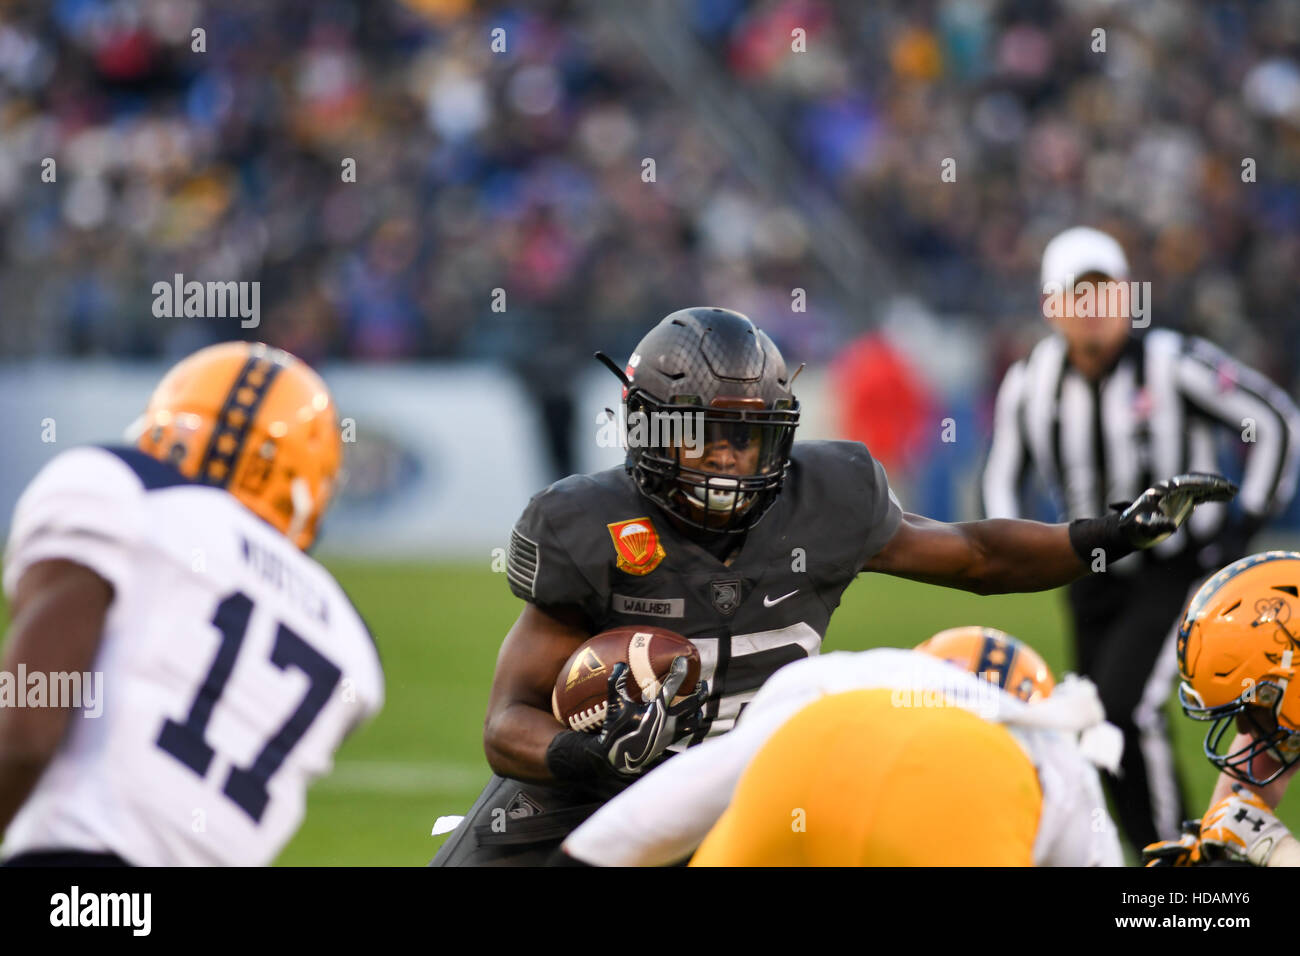 Baltimore, Maryland, USA. 10th Dec, 2016. Army's RB, KELL WALKER, in action during the game at M&T Bank - Stock Image